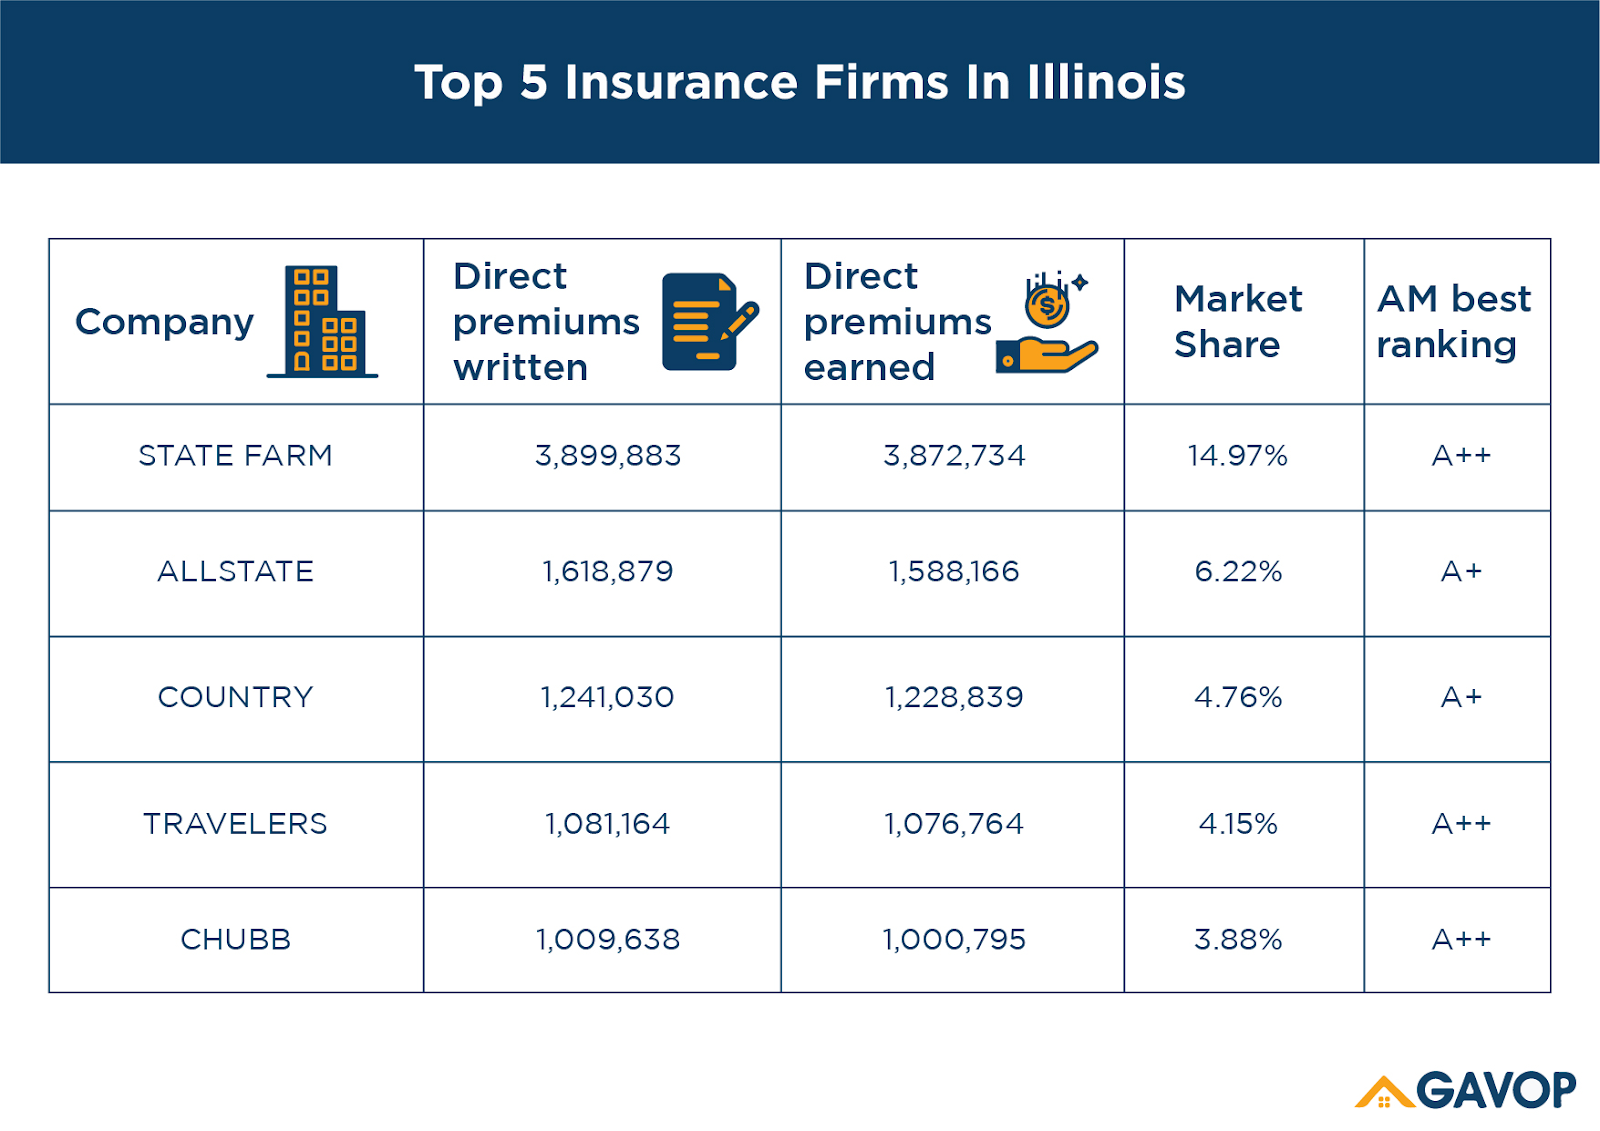 Top 5 Home Insurance Companies In Illinois Has A Cumulative Market